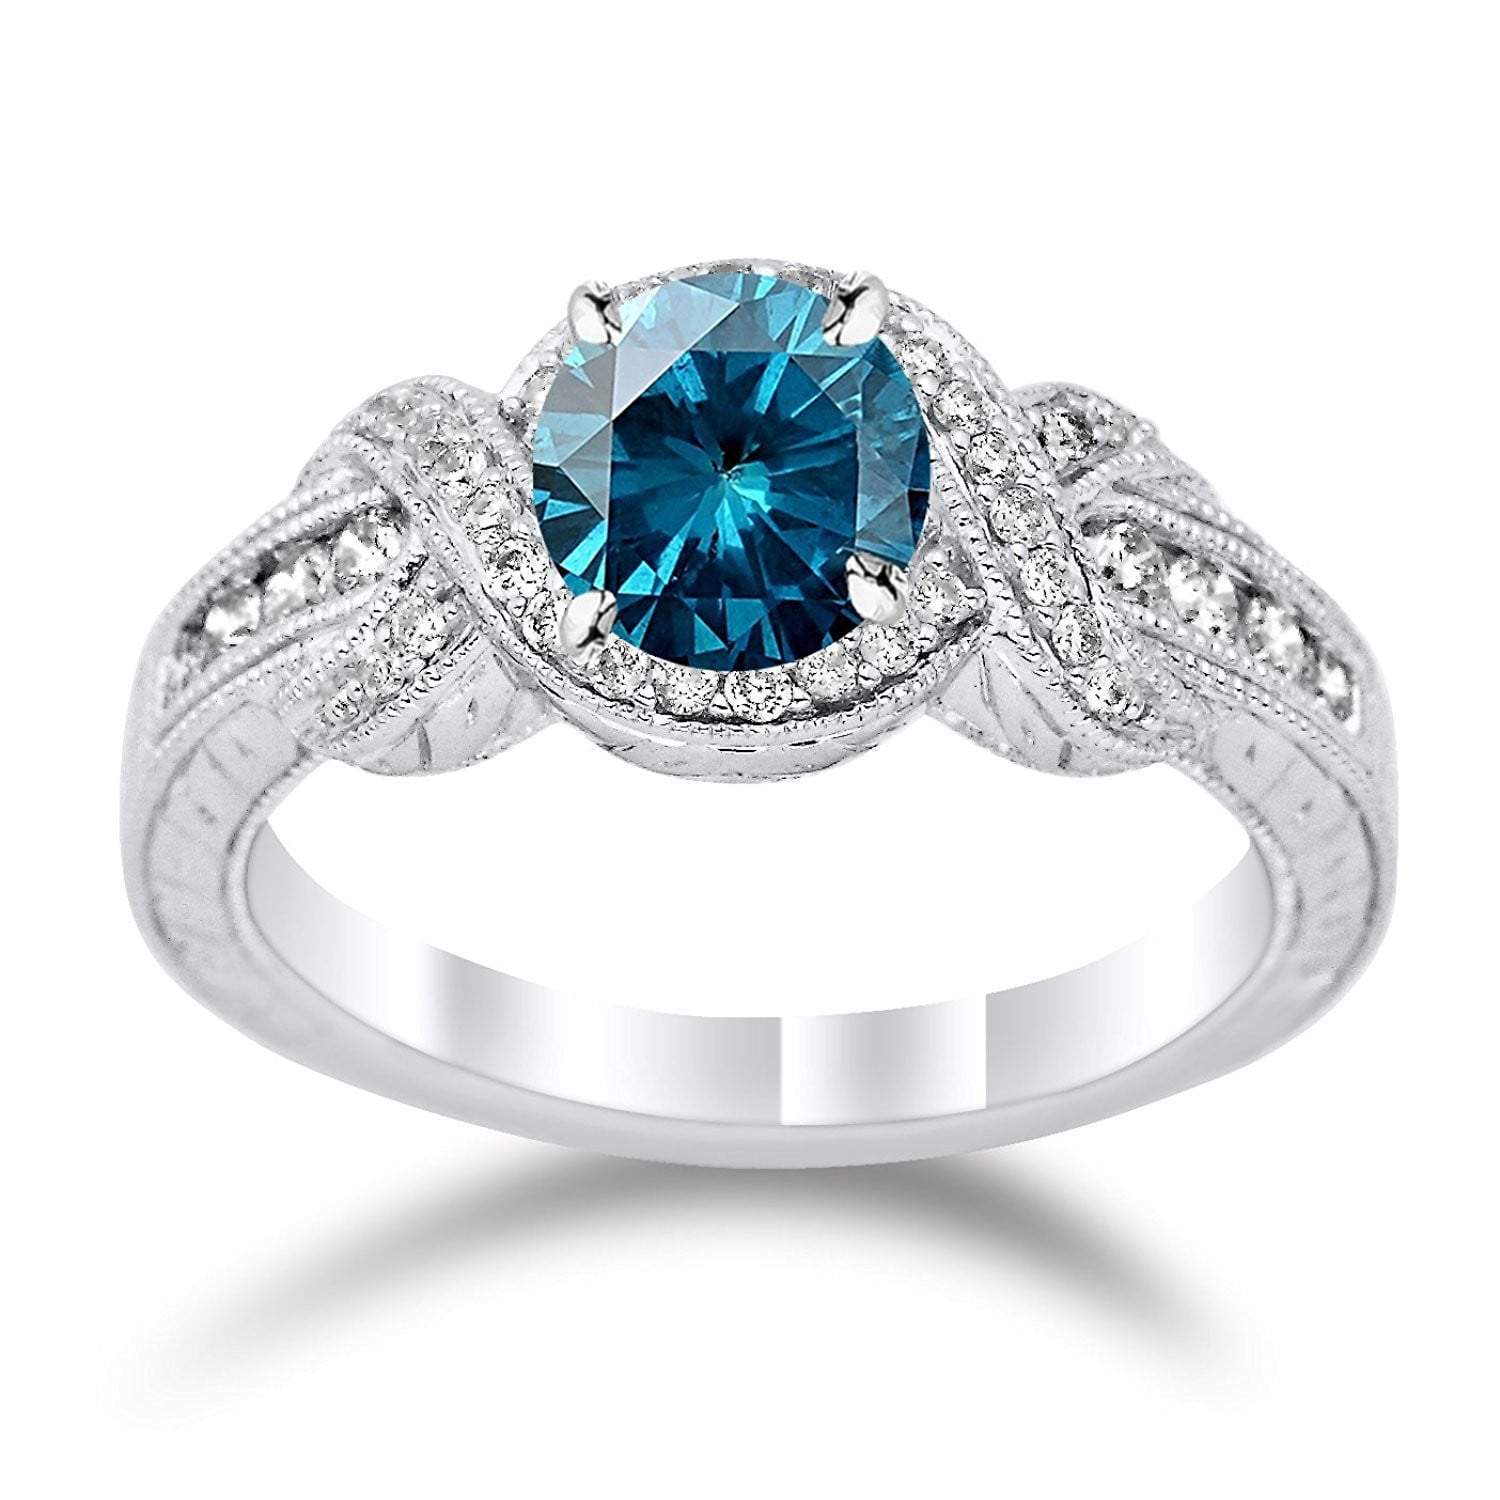 carat rings co book engagement in intense statement a high jewelry with tiffany ring wave fancy diamond jewellery platinum blue